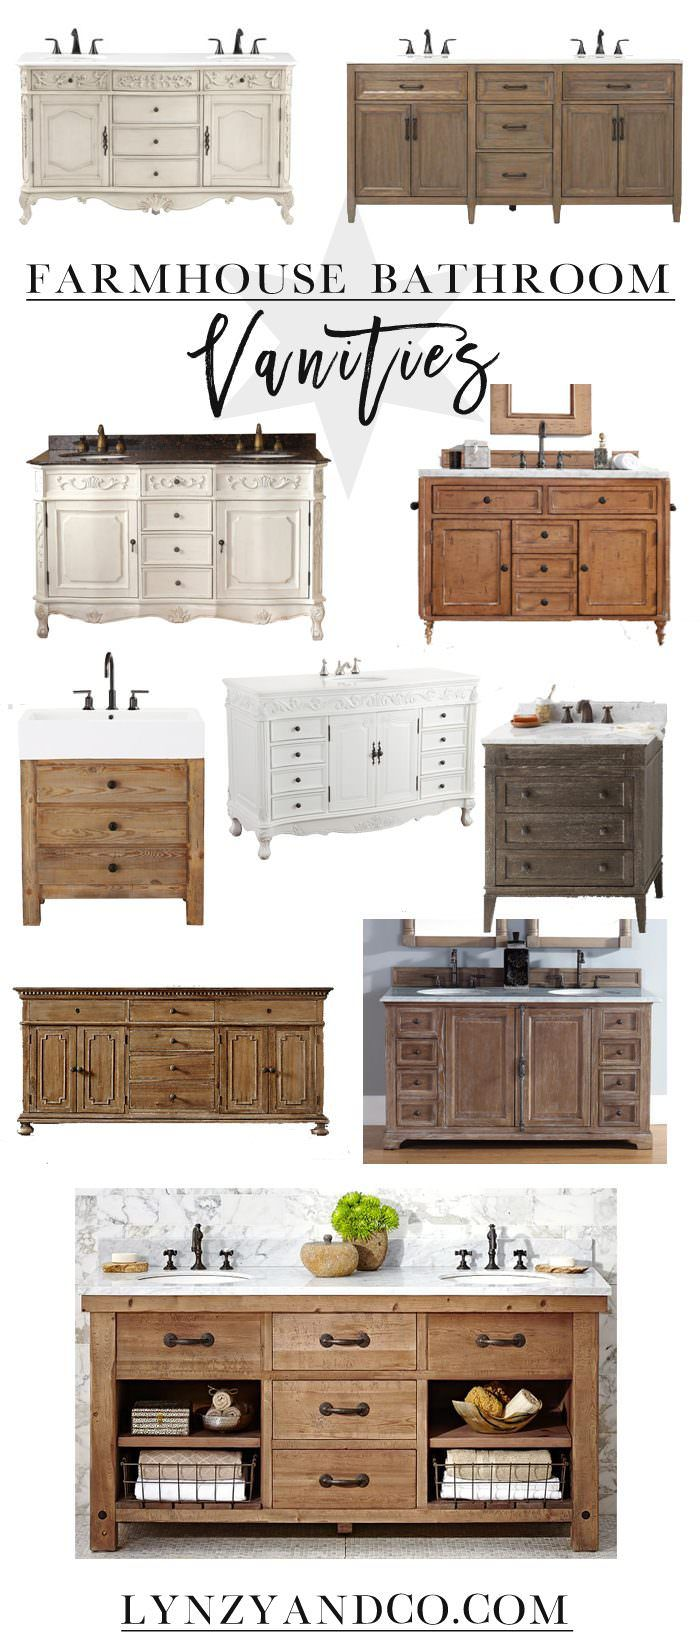 Bathroom vanity designs - Best Farmhouse Bathroom Vanities